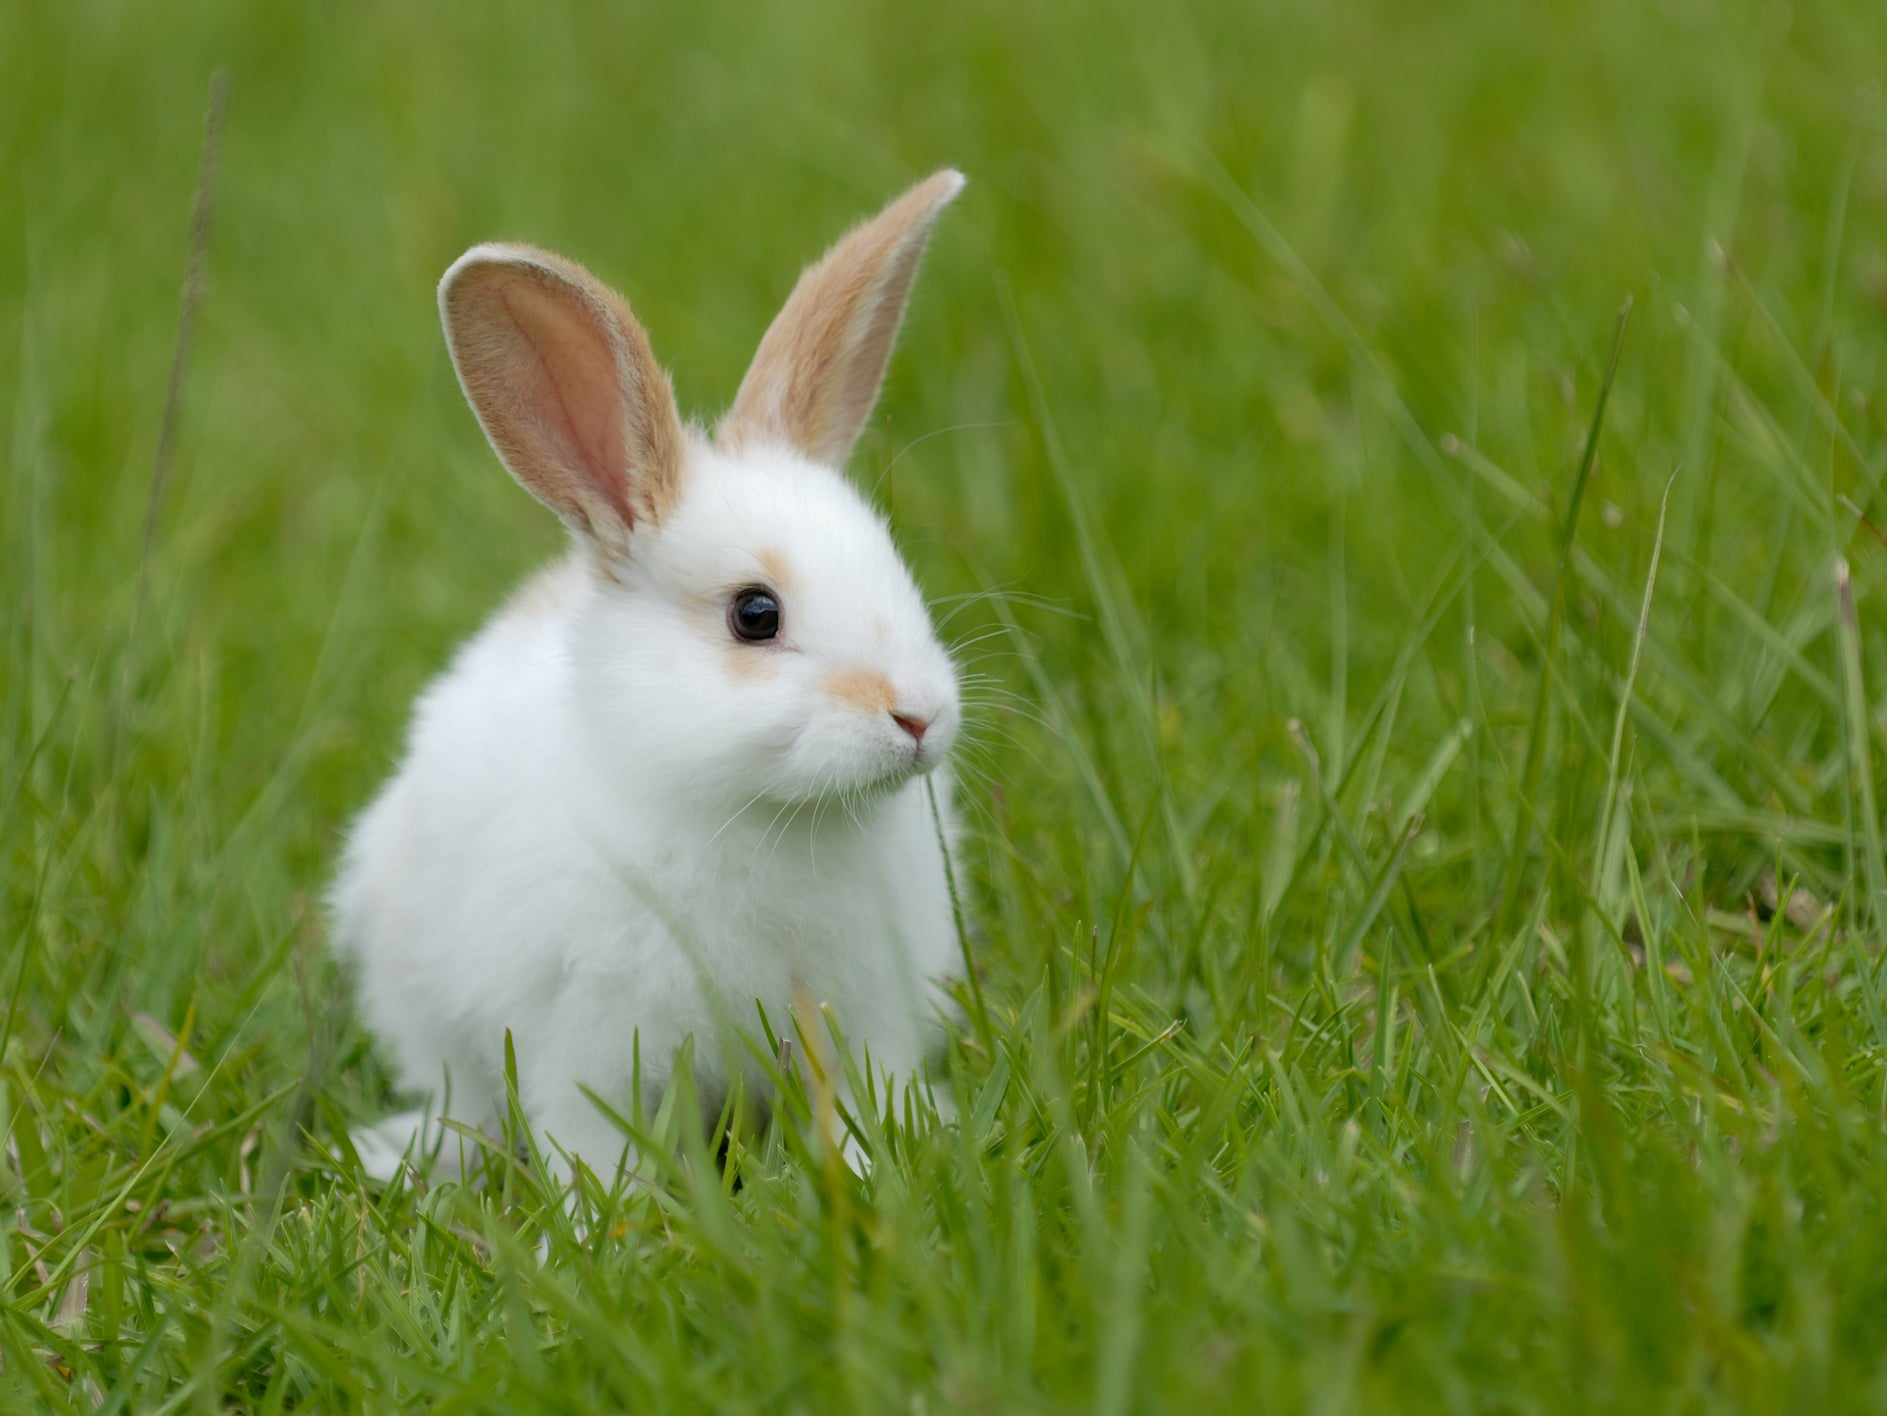 Rabbits are stronger and bigger if they eat their own faeces, study finds | The Independent | The Independent